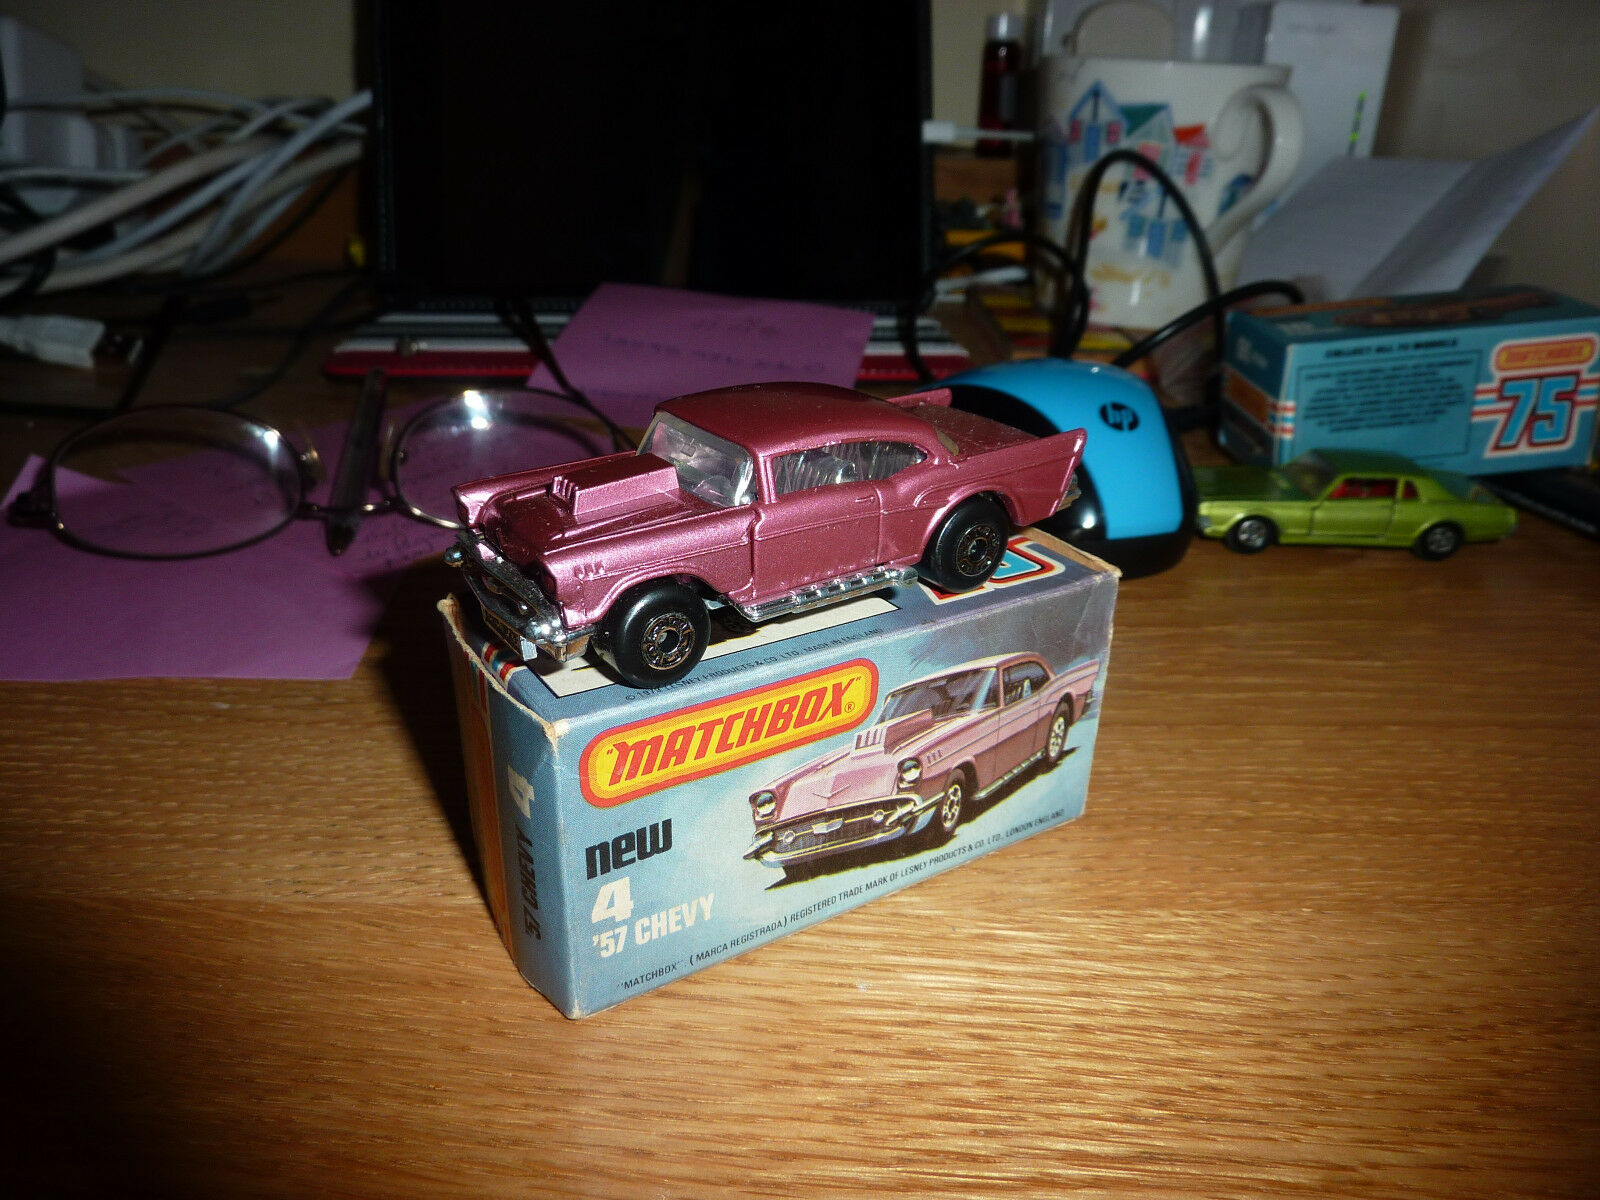 Lesney Matchbox Series - No 4 - '57 Chevy - - - Boxed c1927a